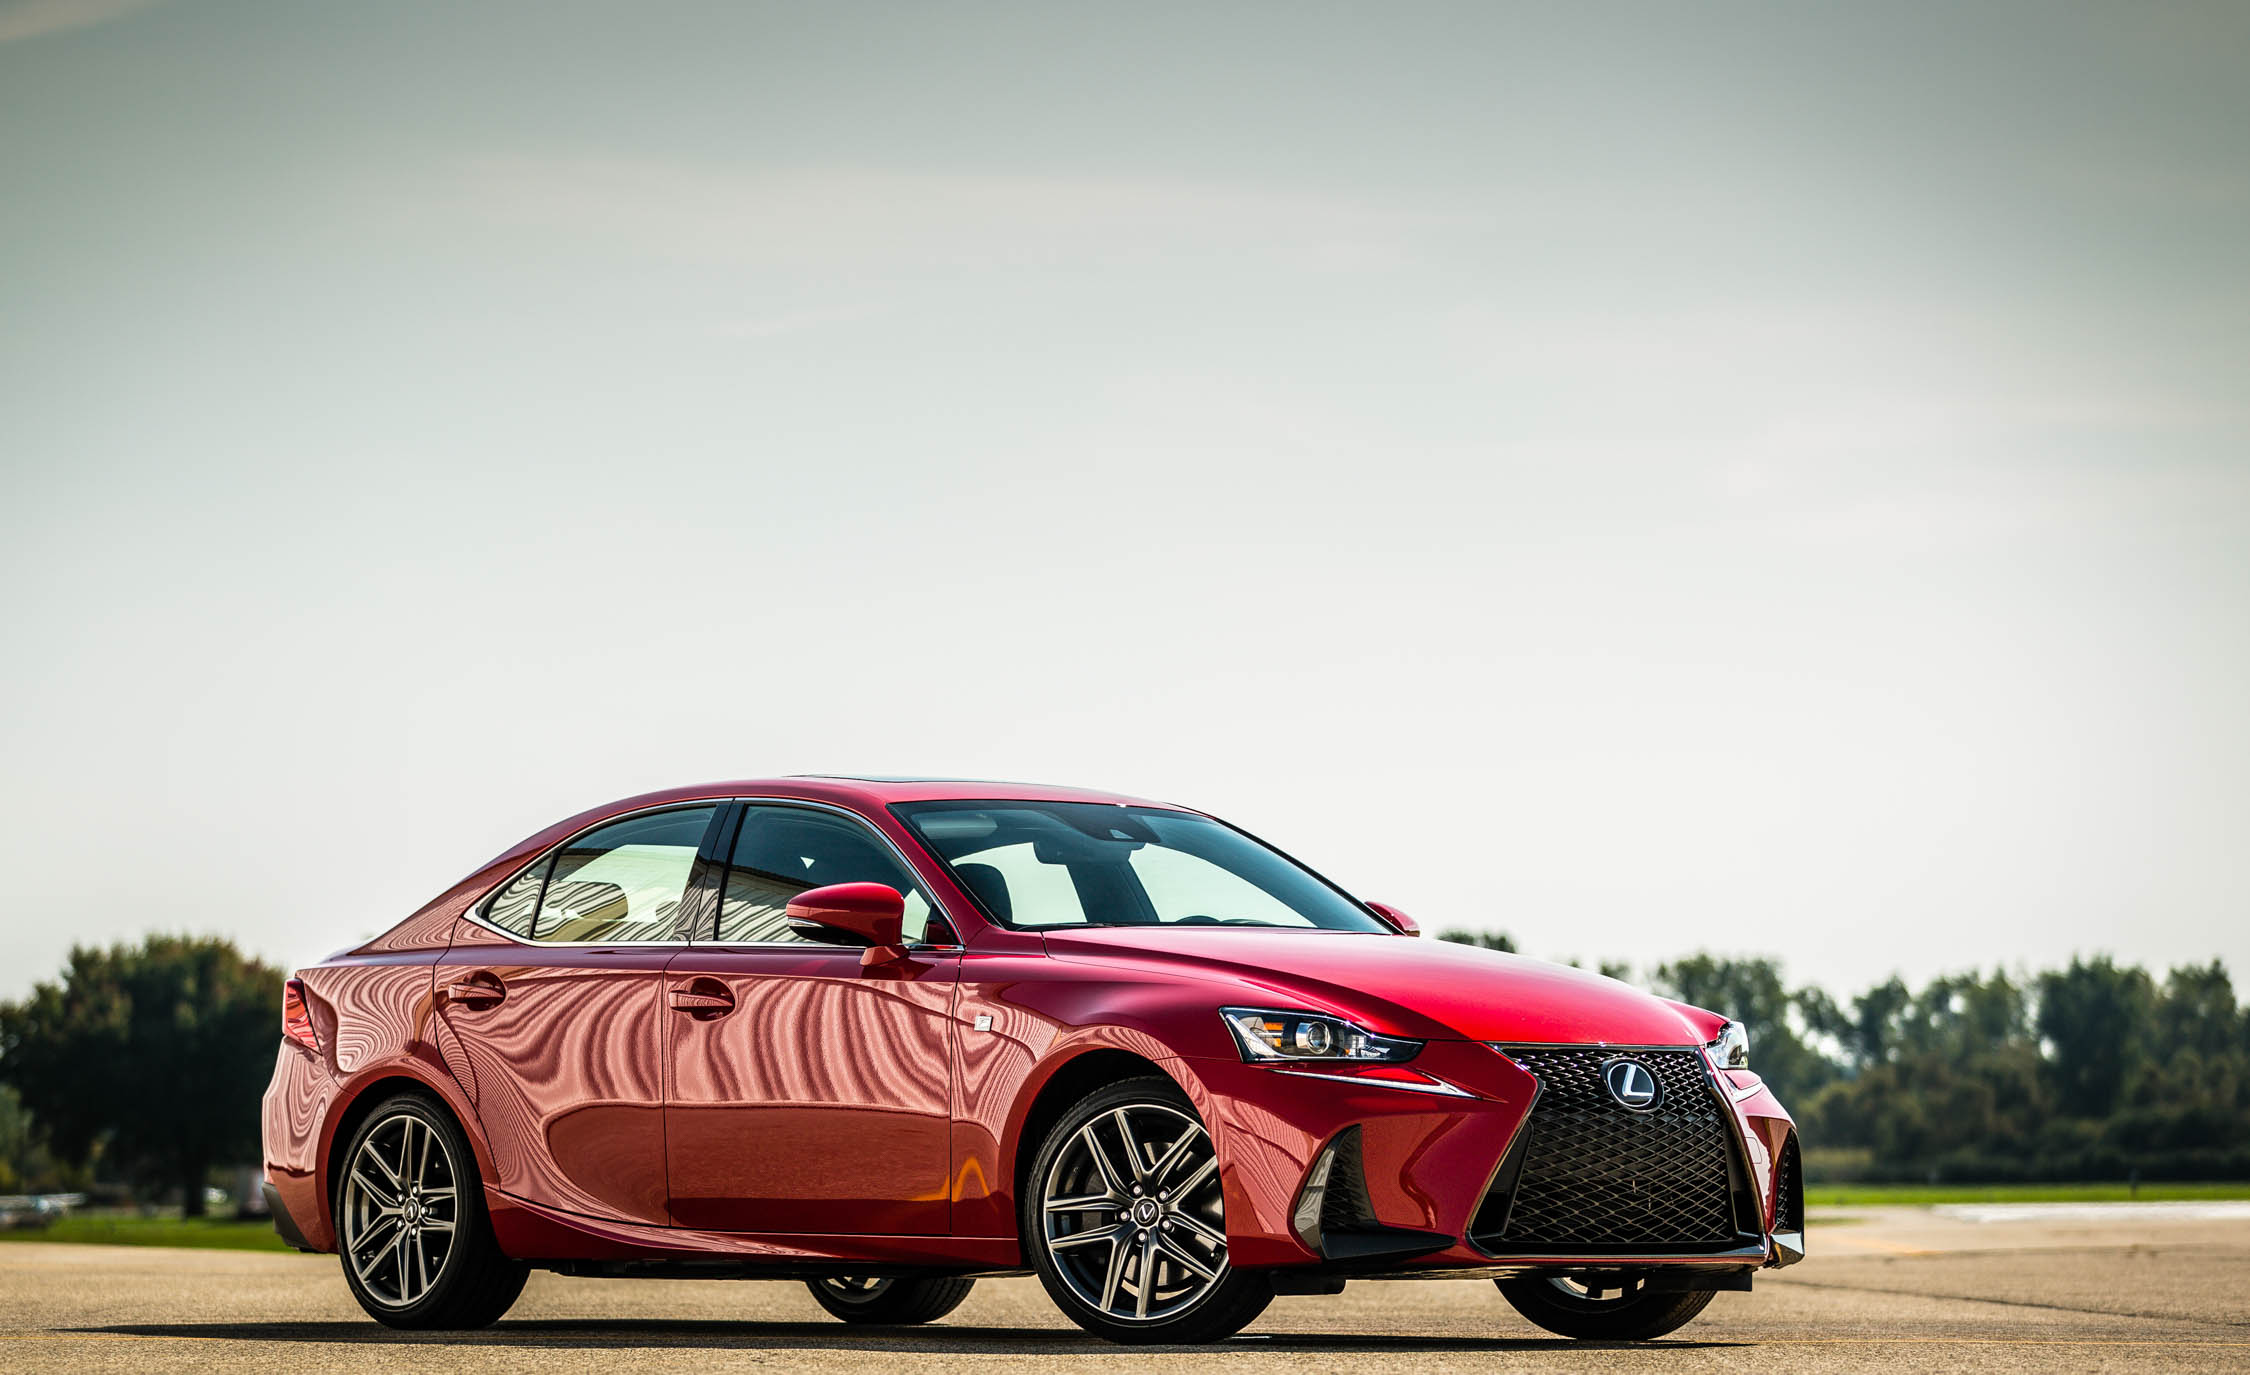 2017 Lexus IS 200t F Sport Red Exterior Side And Front (Photo 19 of 29)